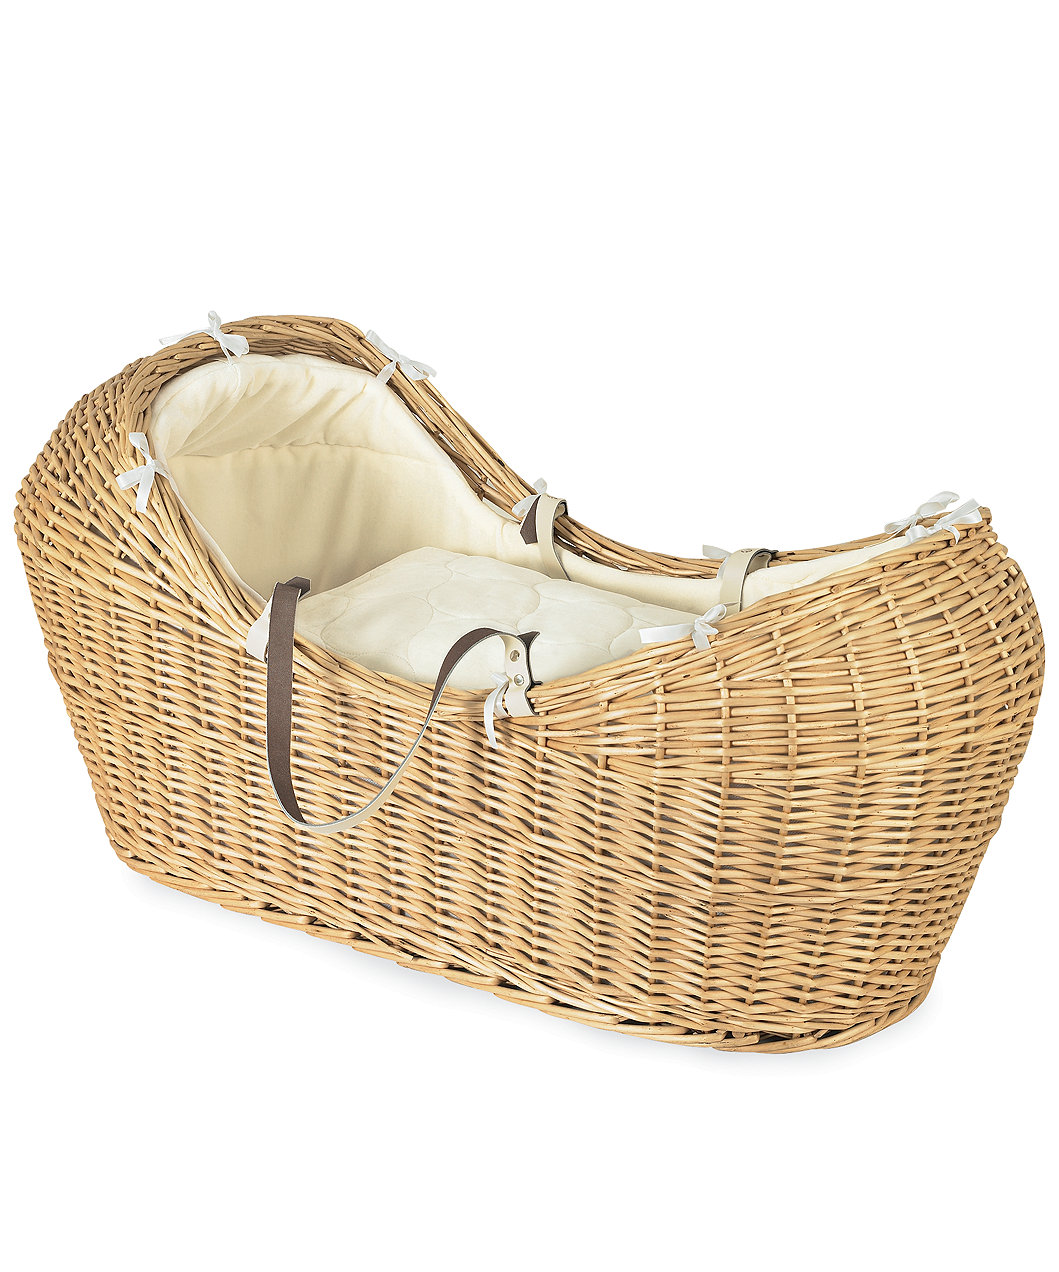 Cribs and Matresses Mothercare The Snug Moses Basket